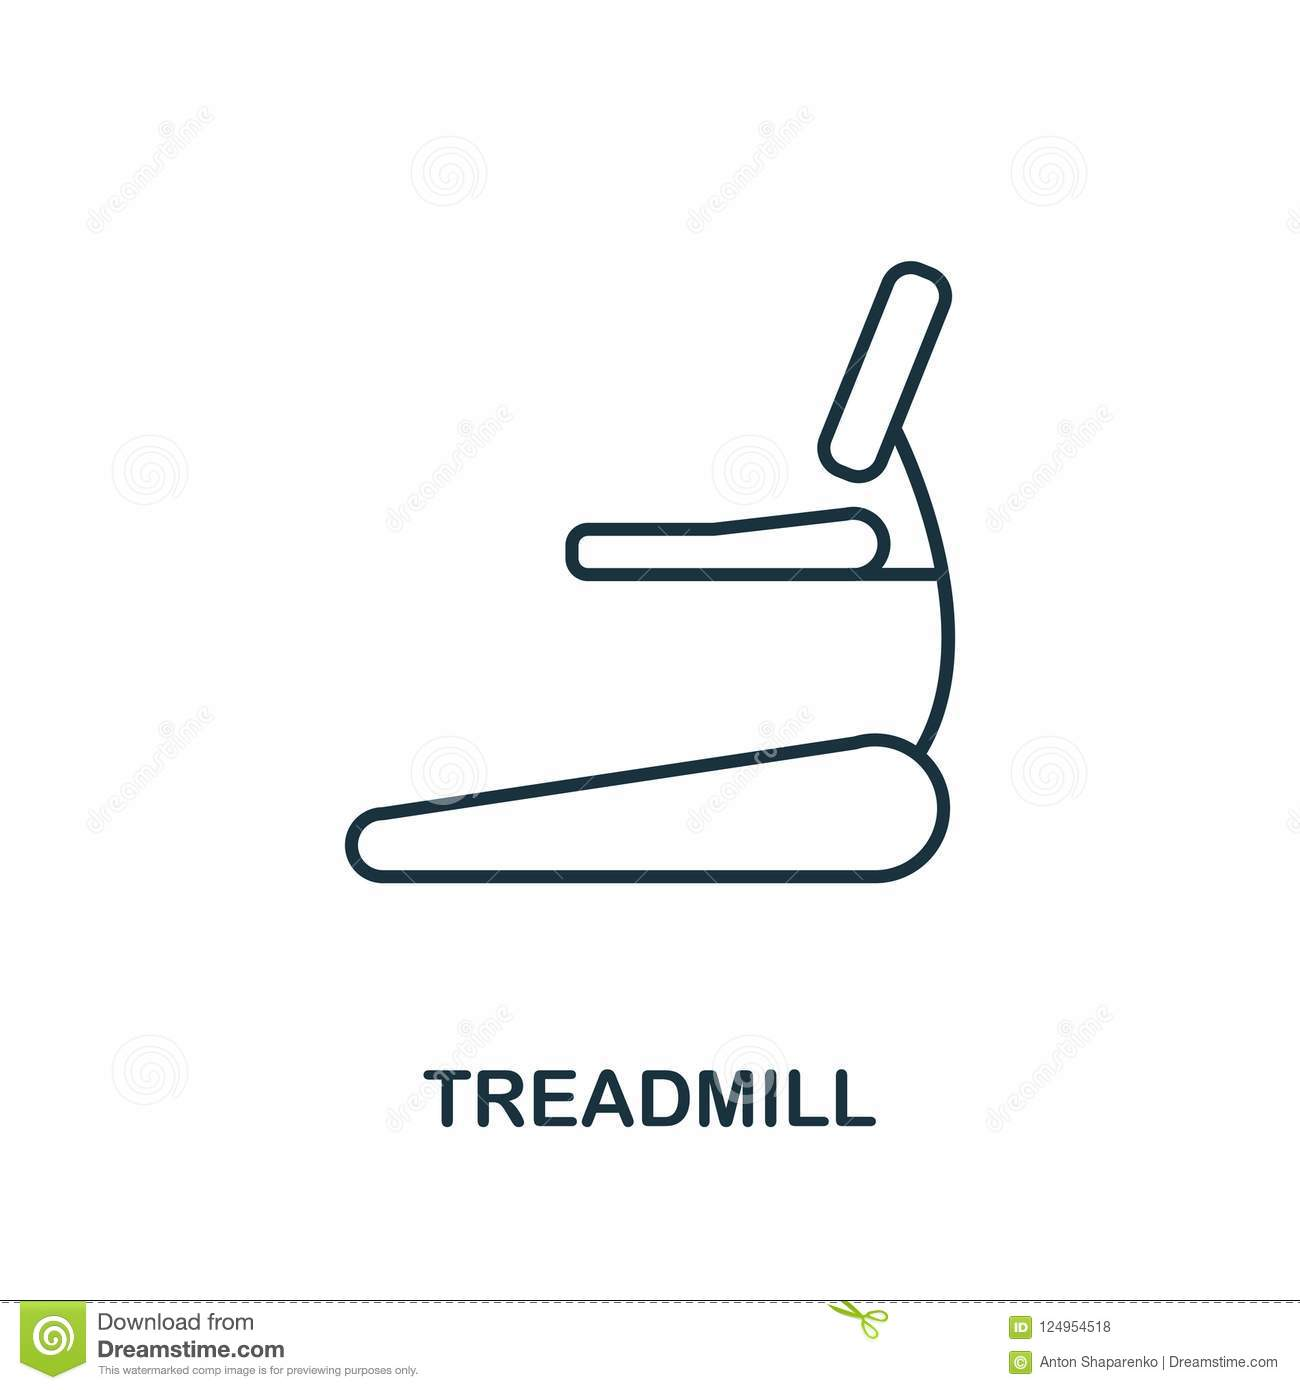 Treadmill outline icon. Simple element illustration. Treadmill icon in outline style design from sport equipment collection. Perfe